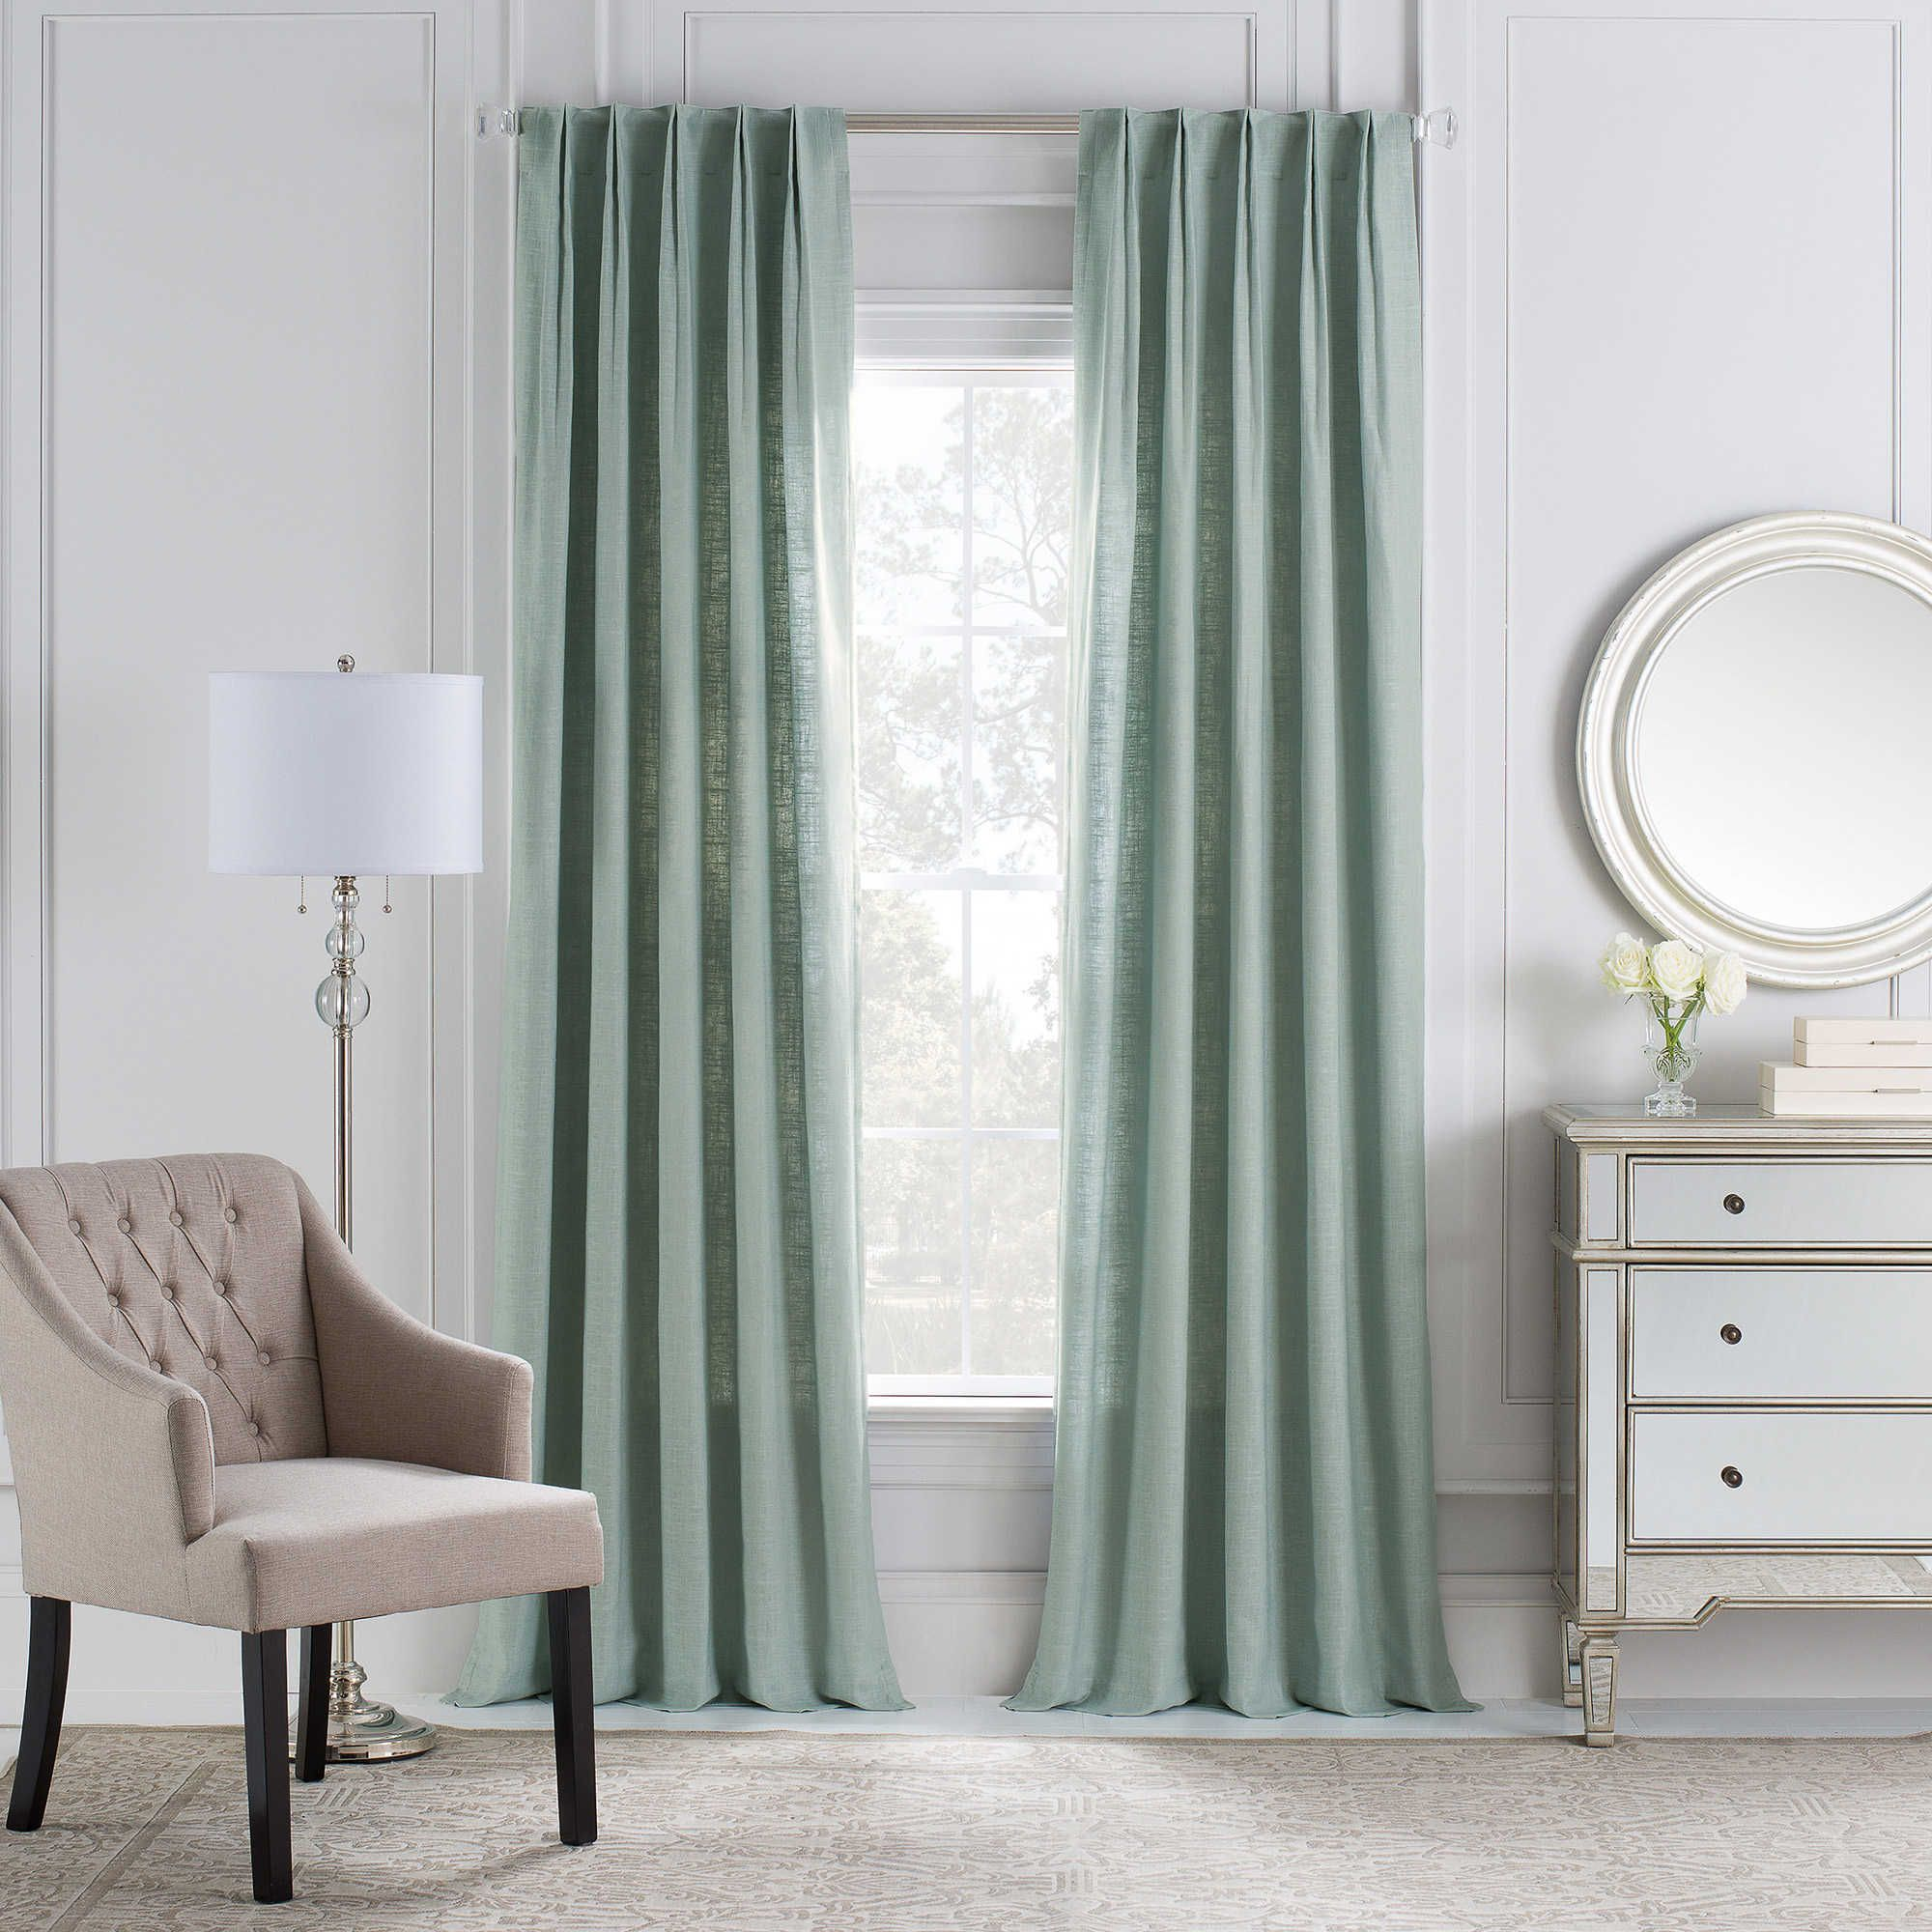 Bed bath and beyond window curtains  cambria malta euro pleat back tab window curtain panel  f m